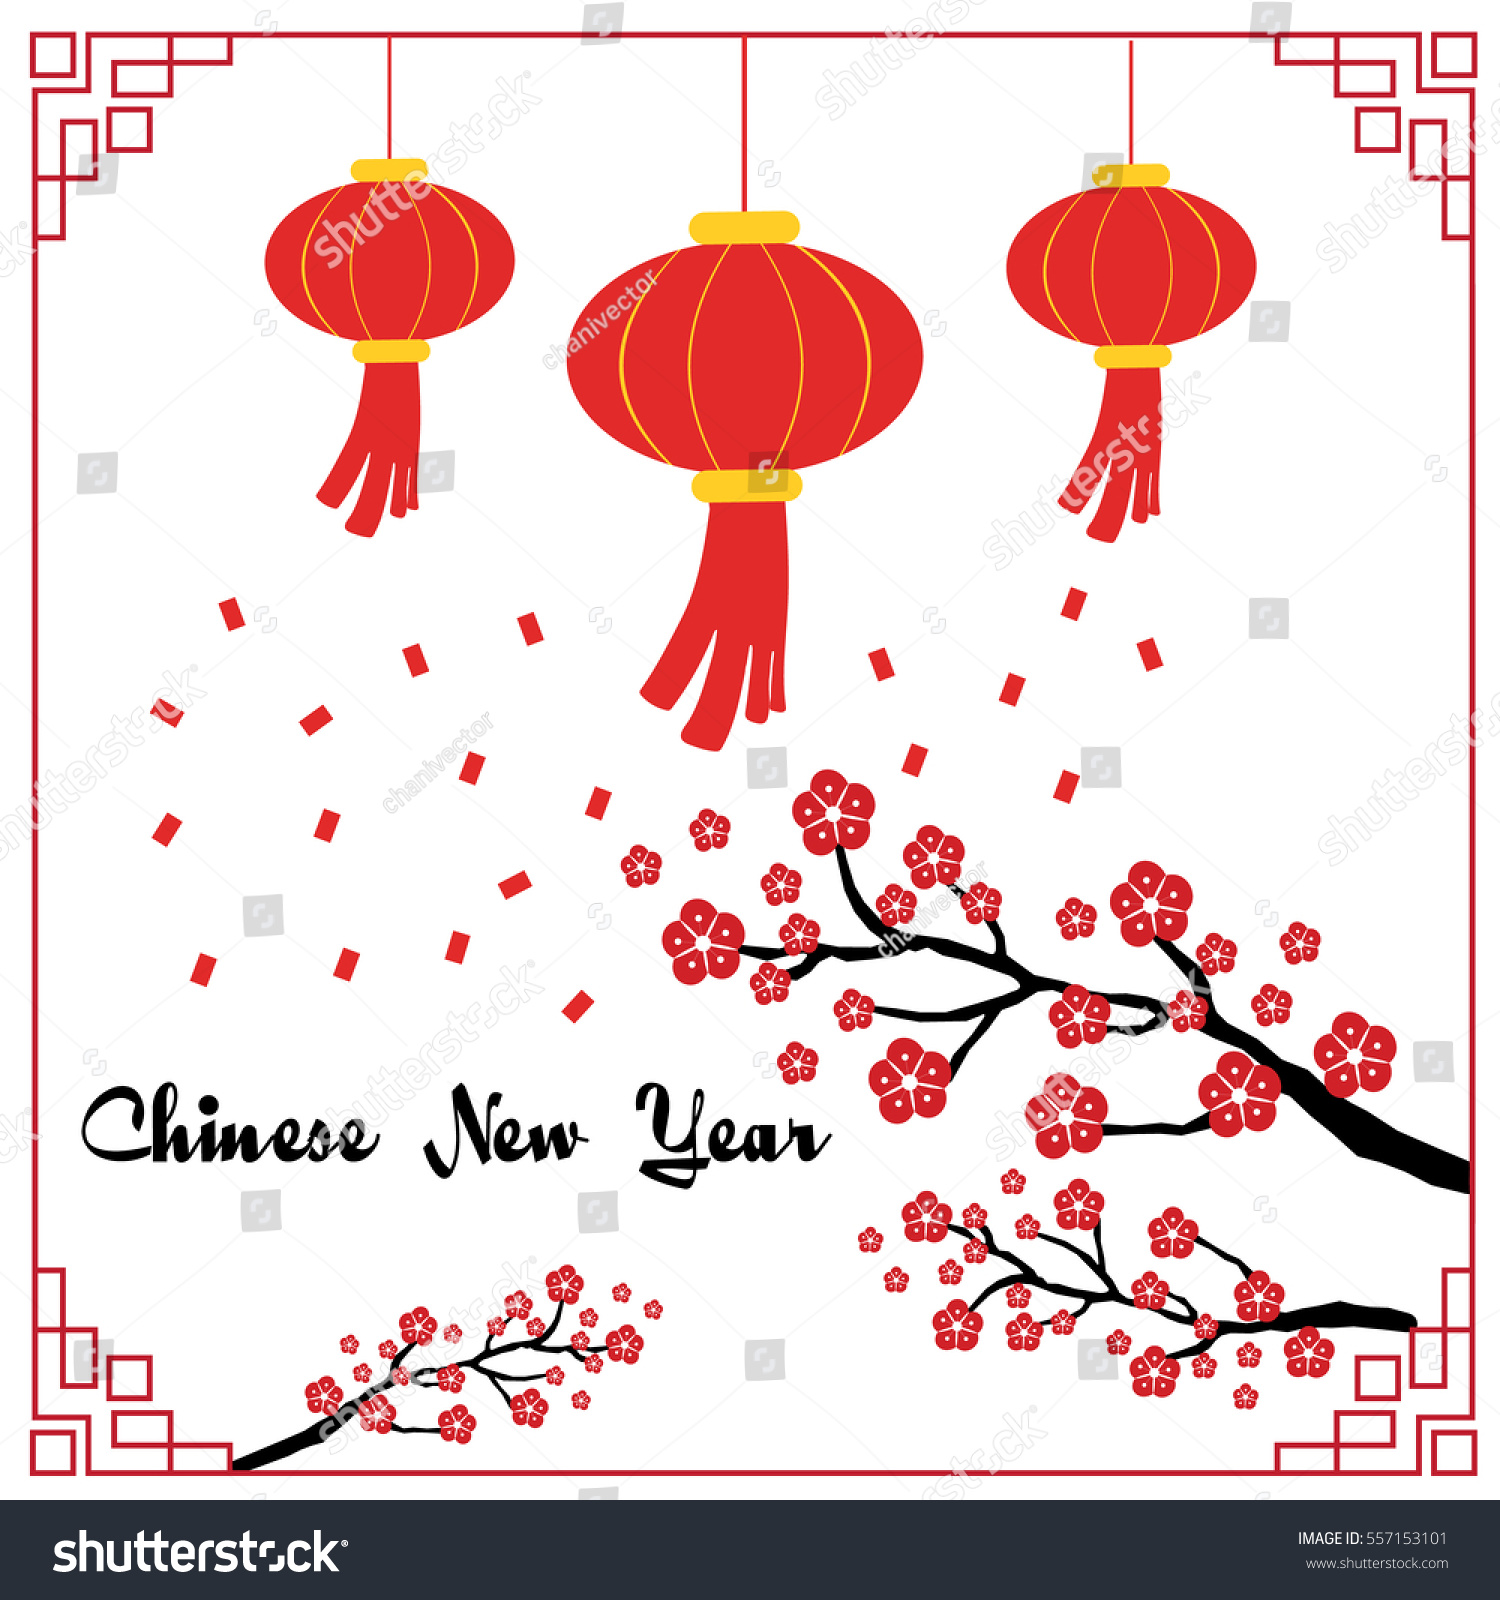 Chinese New Year Card Flowers Lantern Stock Vector (Royalty Free ...